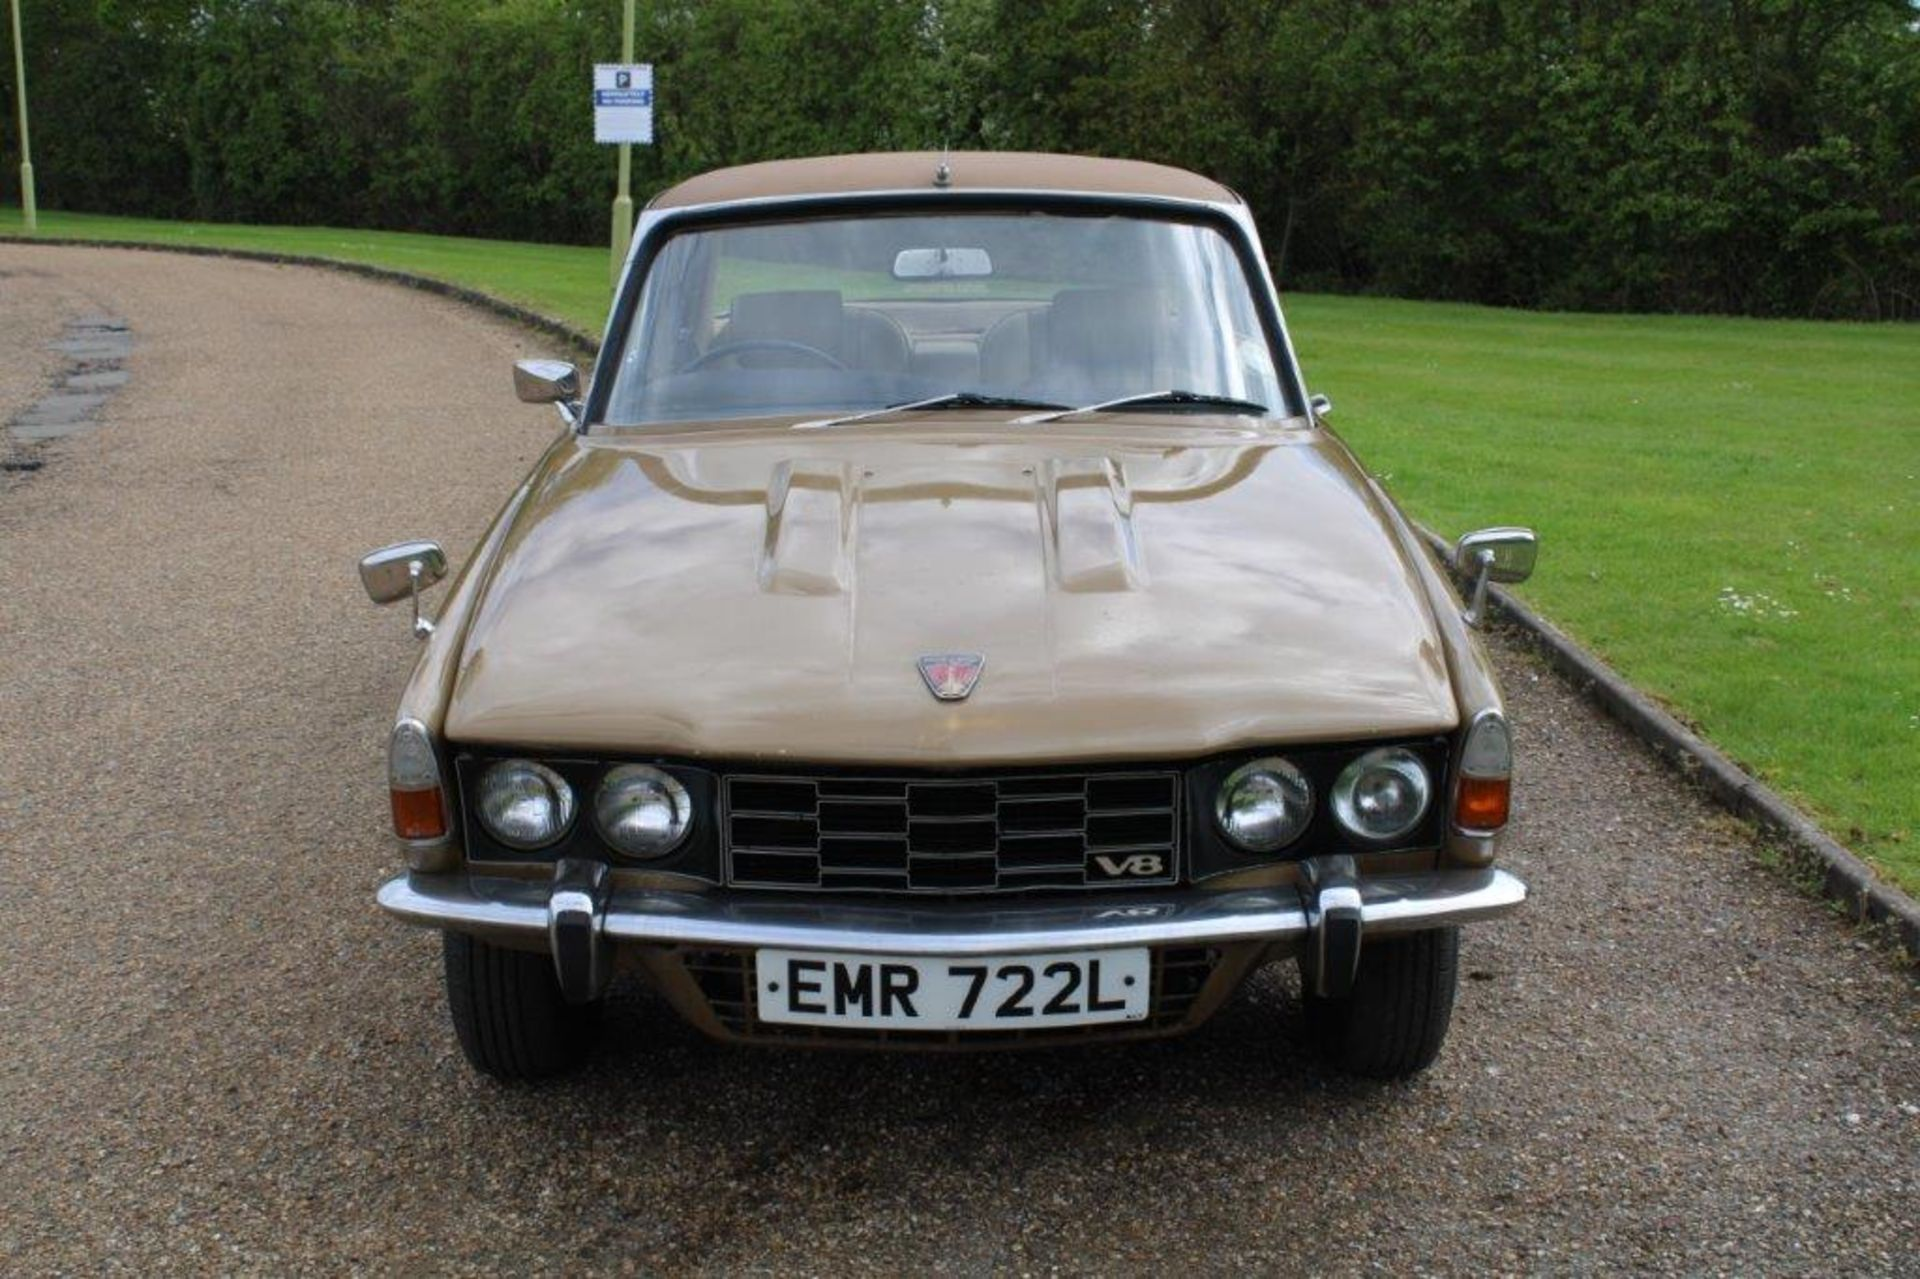 1970 Rover P6 3500 S 1 of 6 development cars - Image 2 of 21